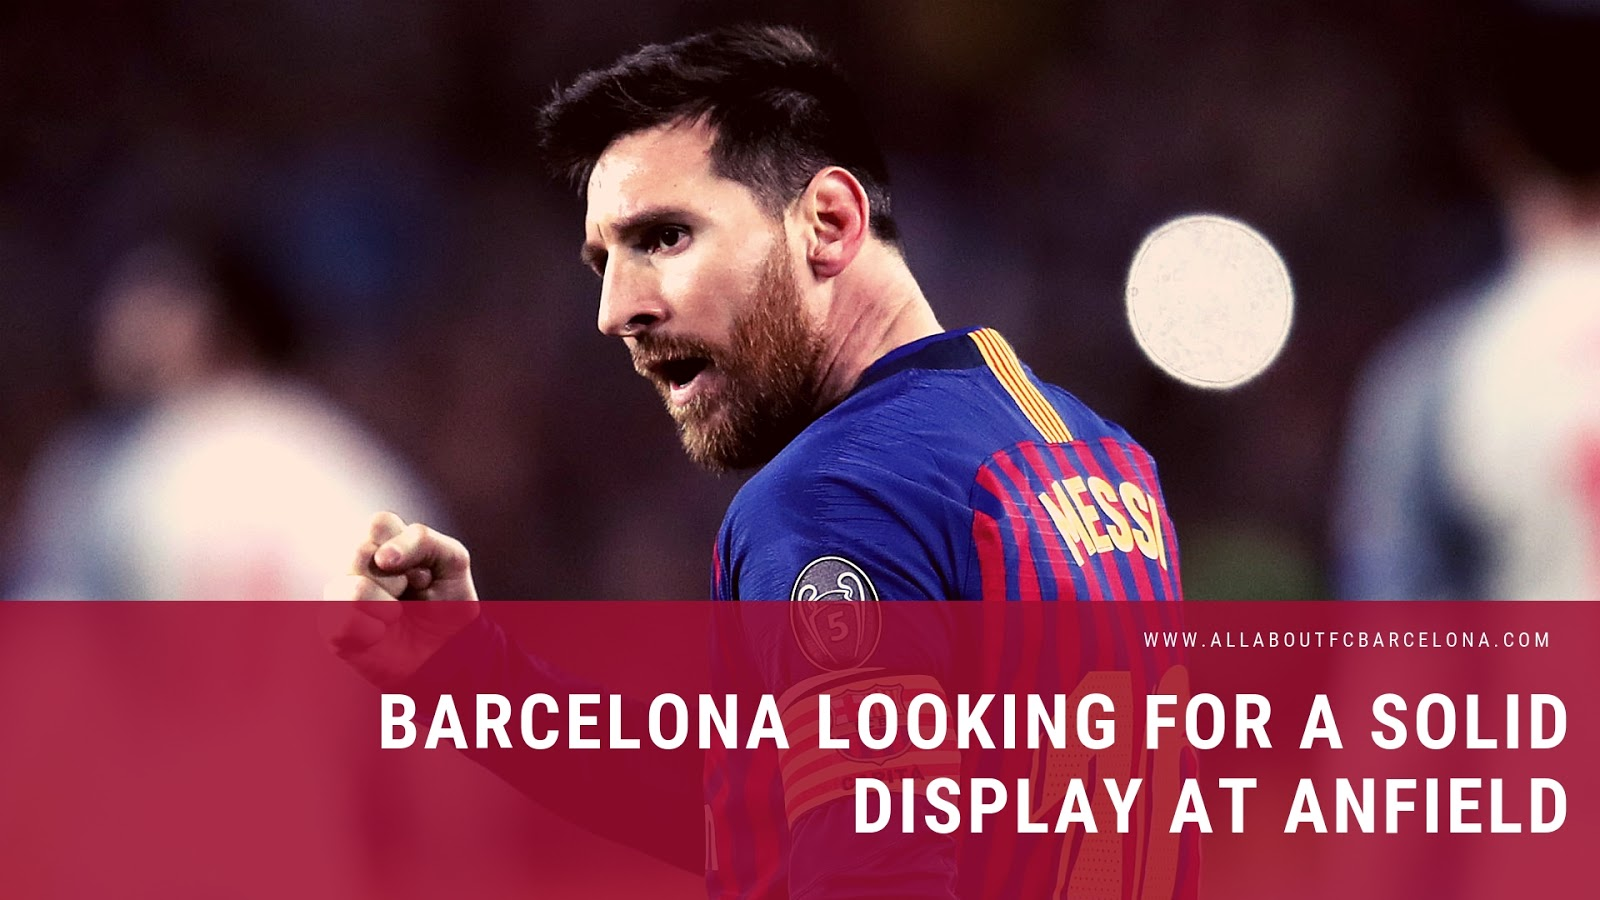 Barcelona Looking for a Solid Display at Anfield